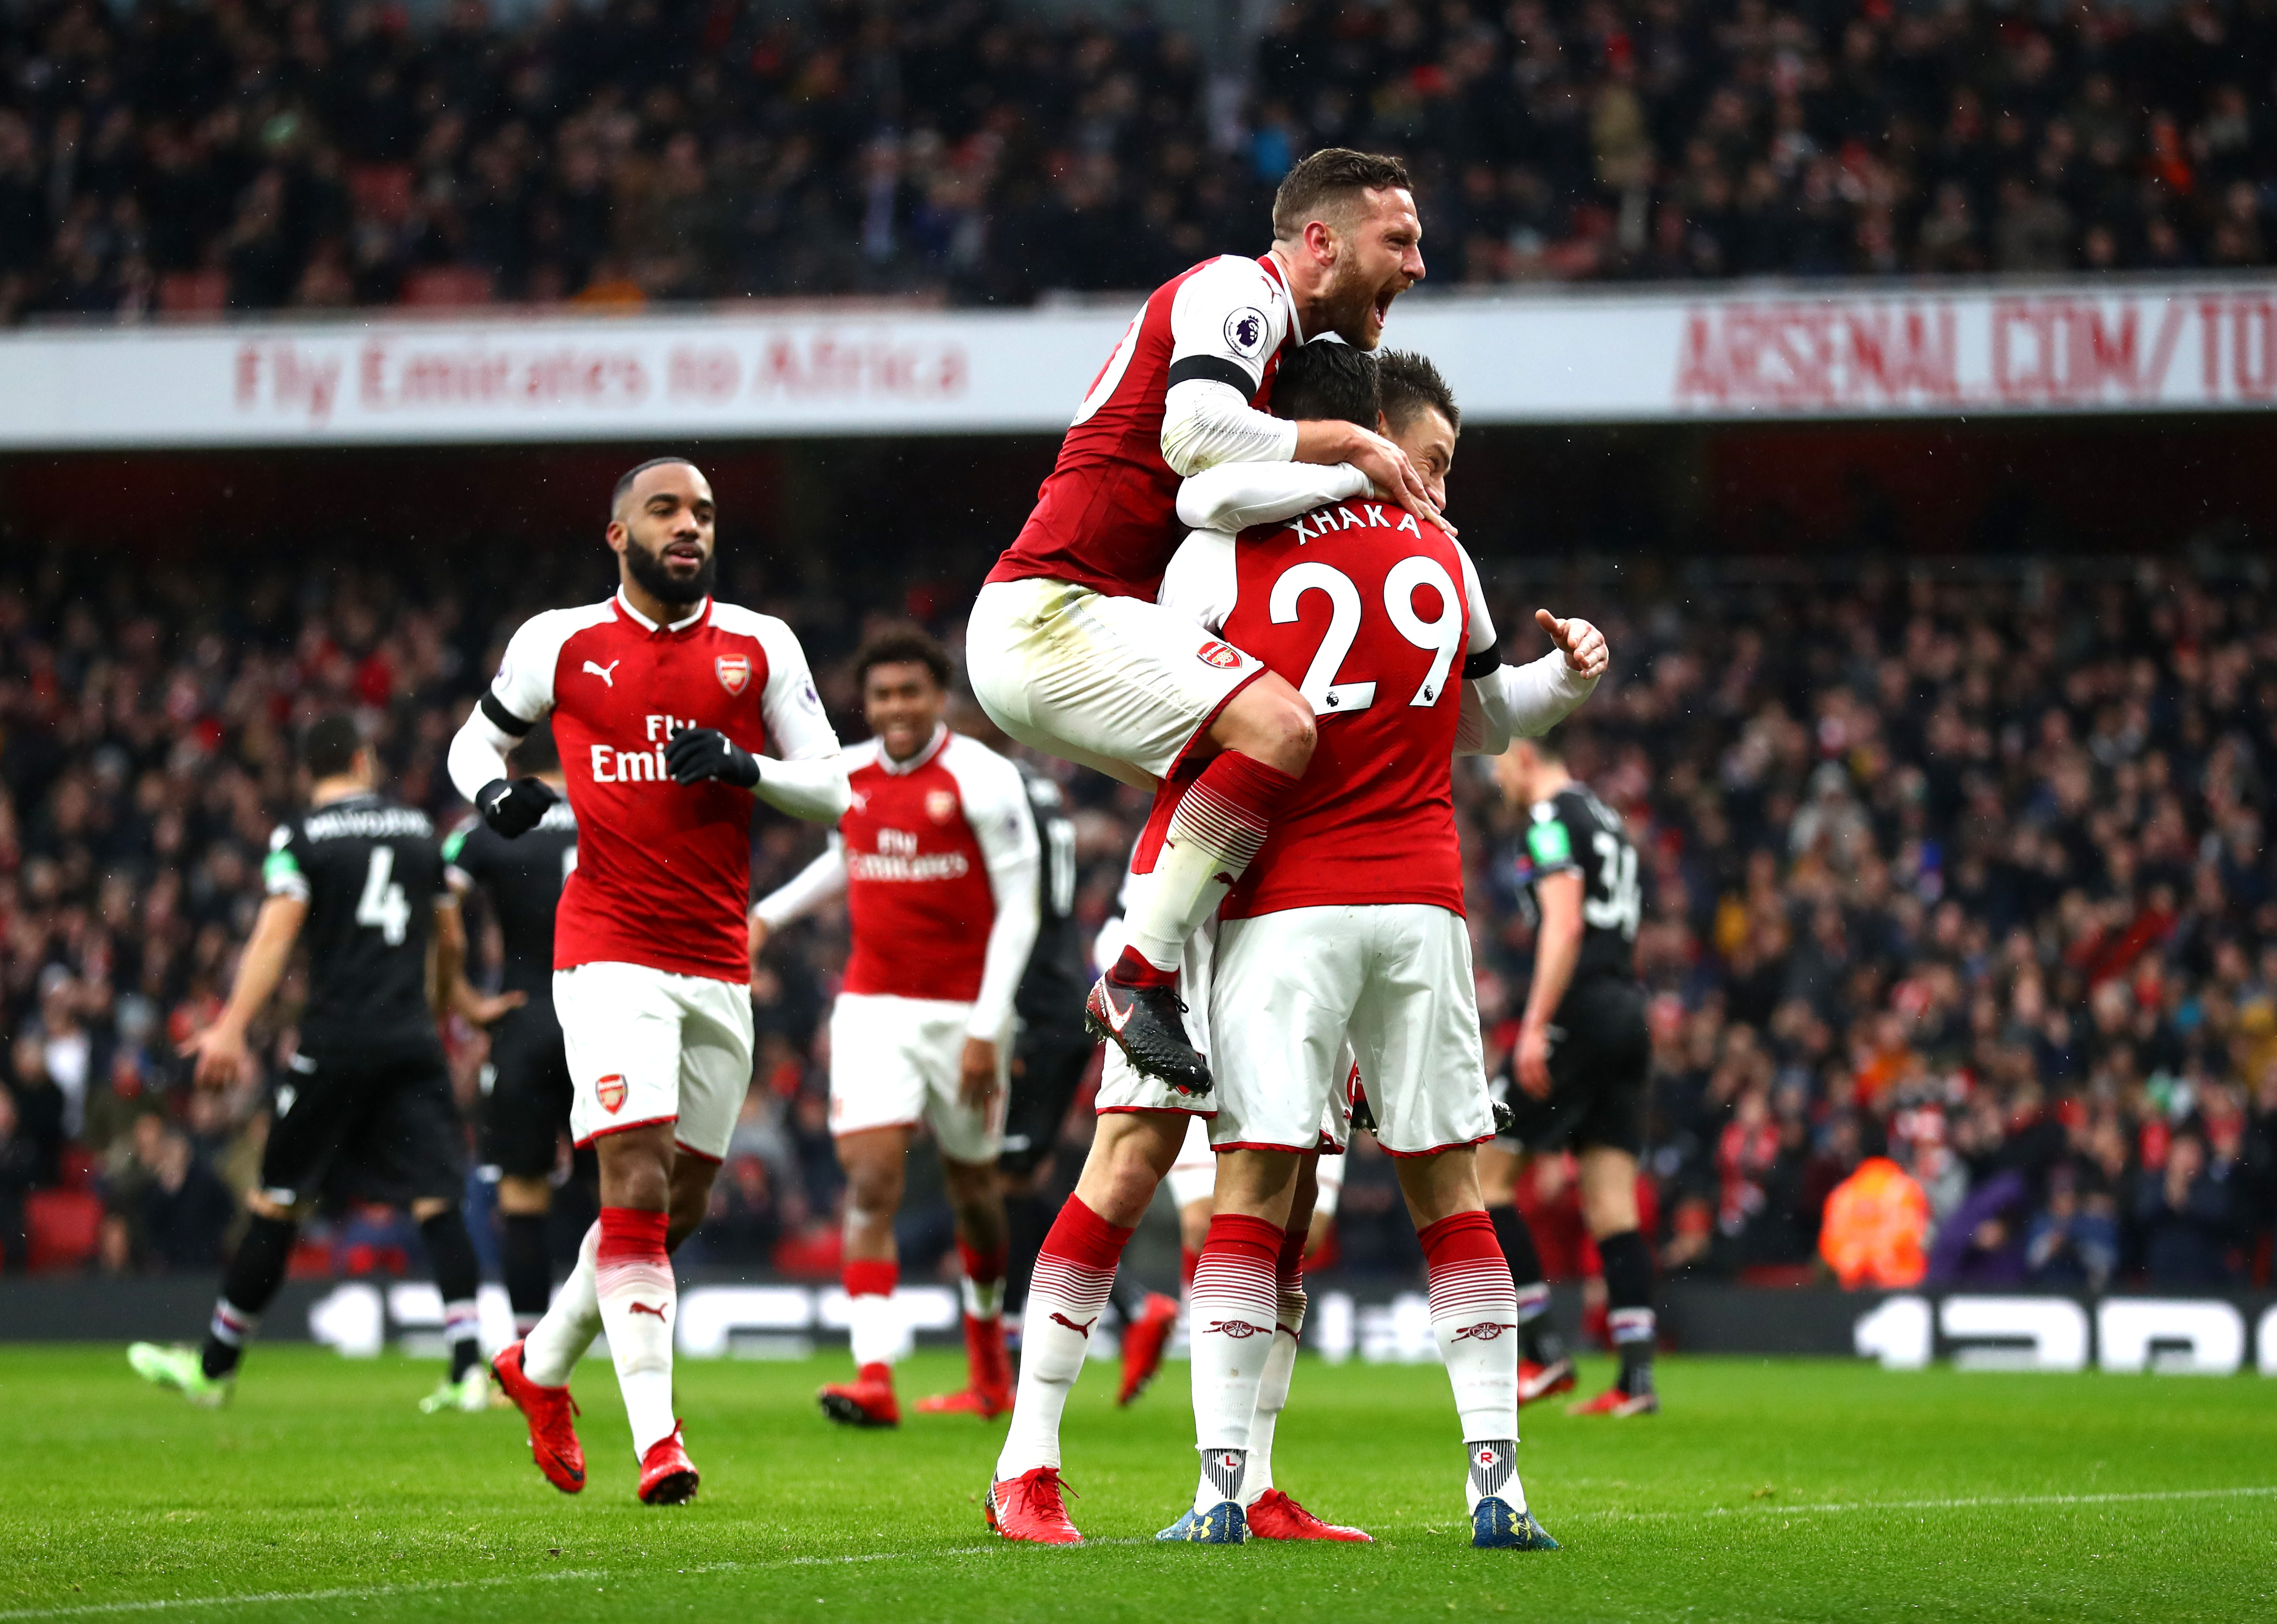 Arsenal vs Everton: 3 things to watch for in match week 26